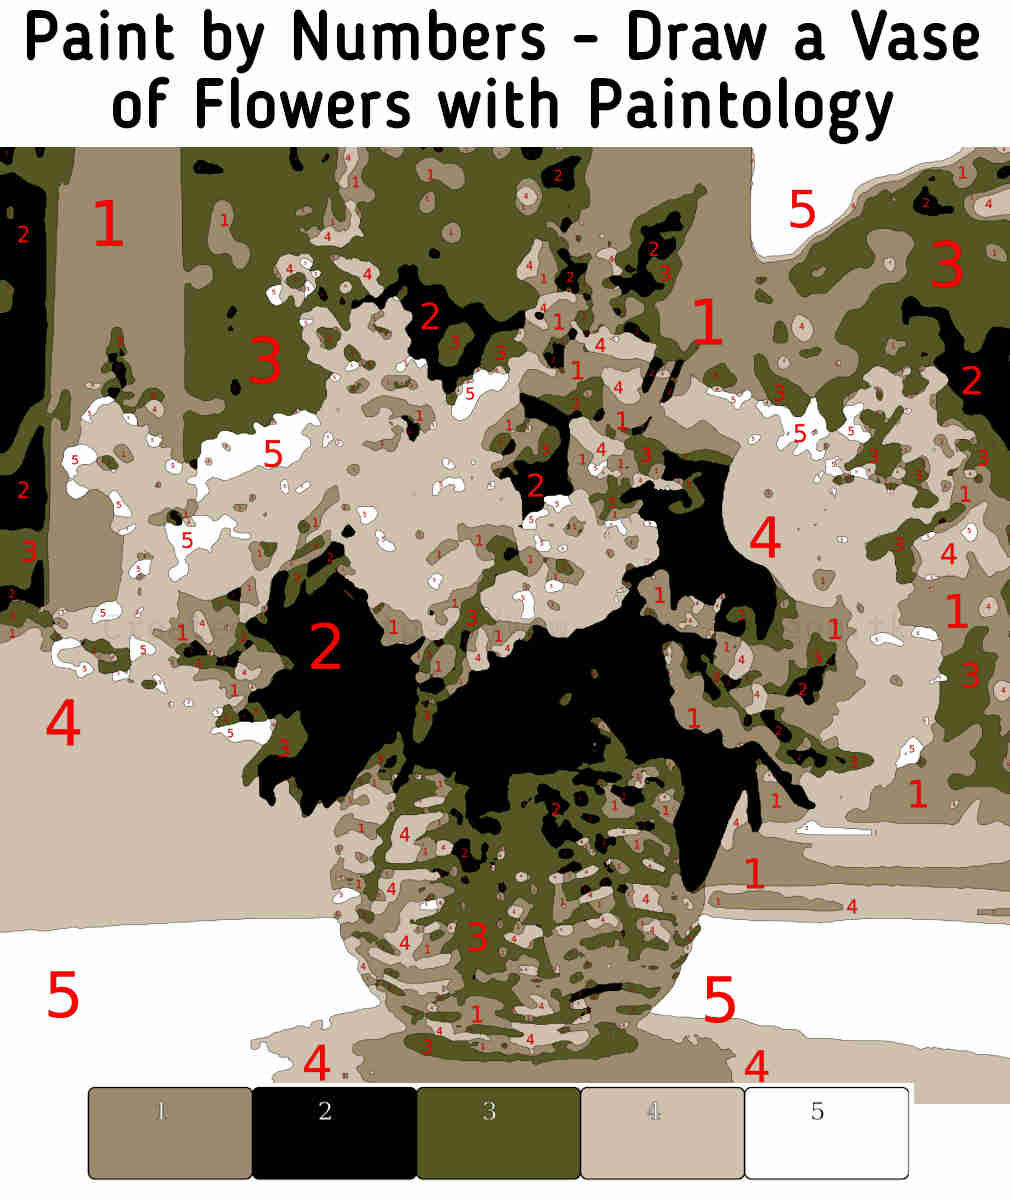 paint by numbers - vase flowers featured